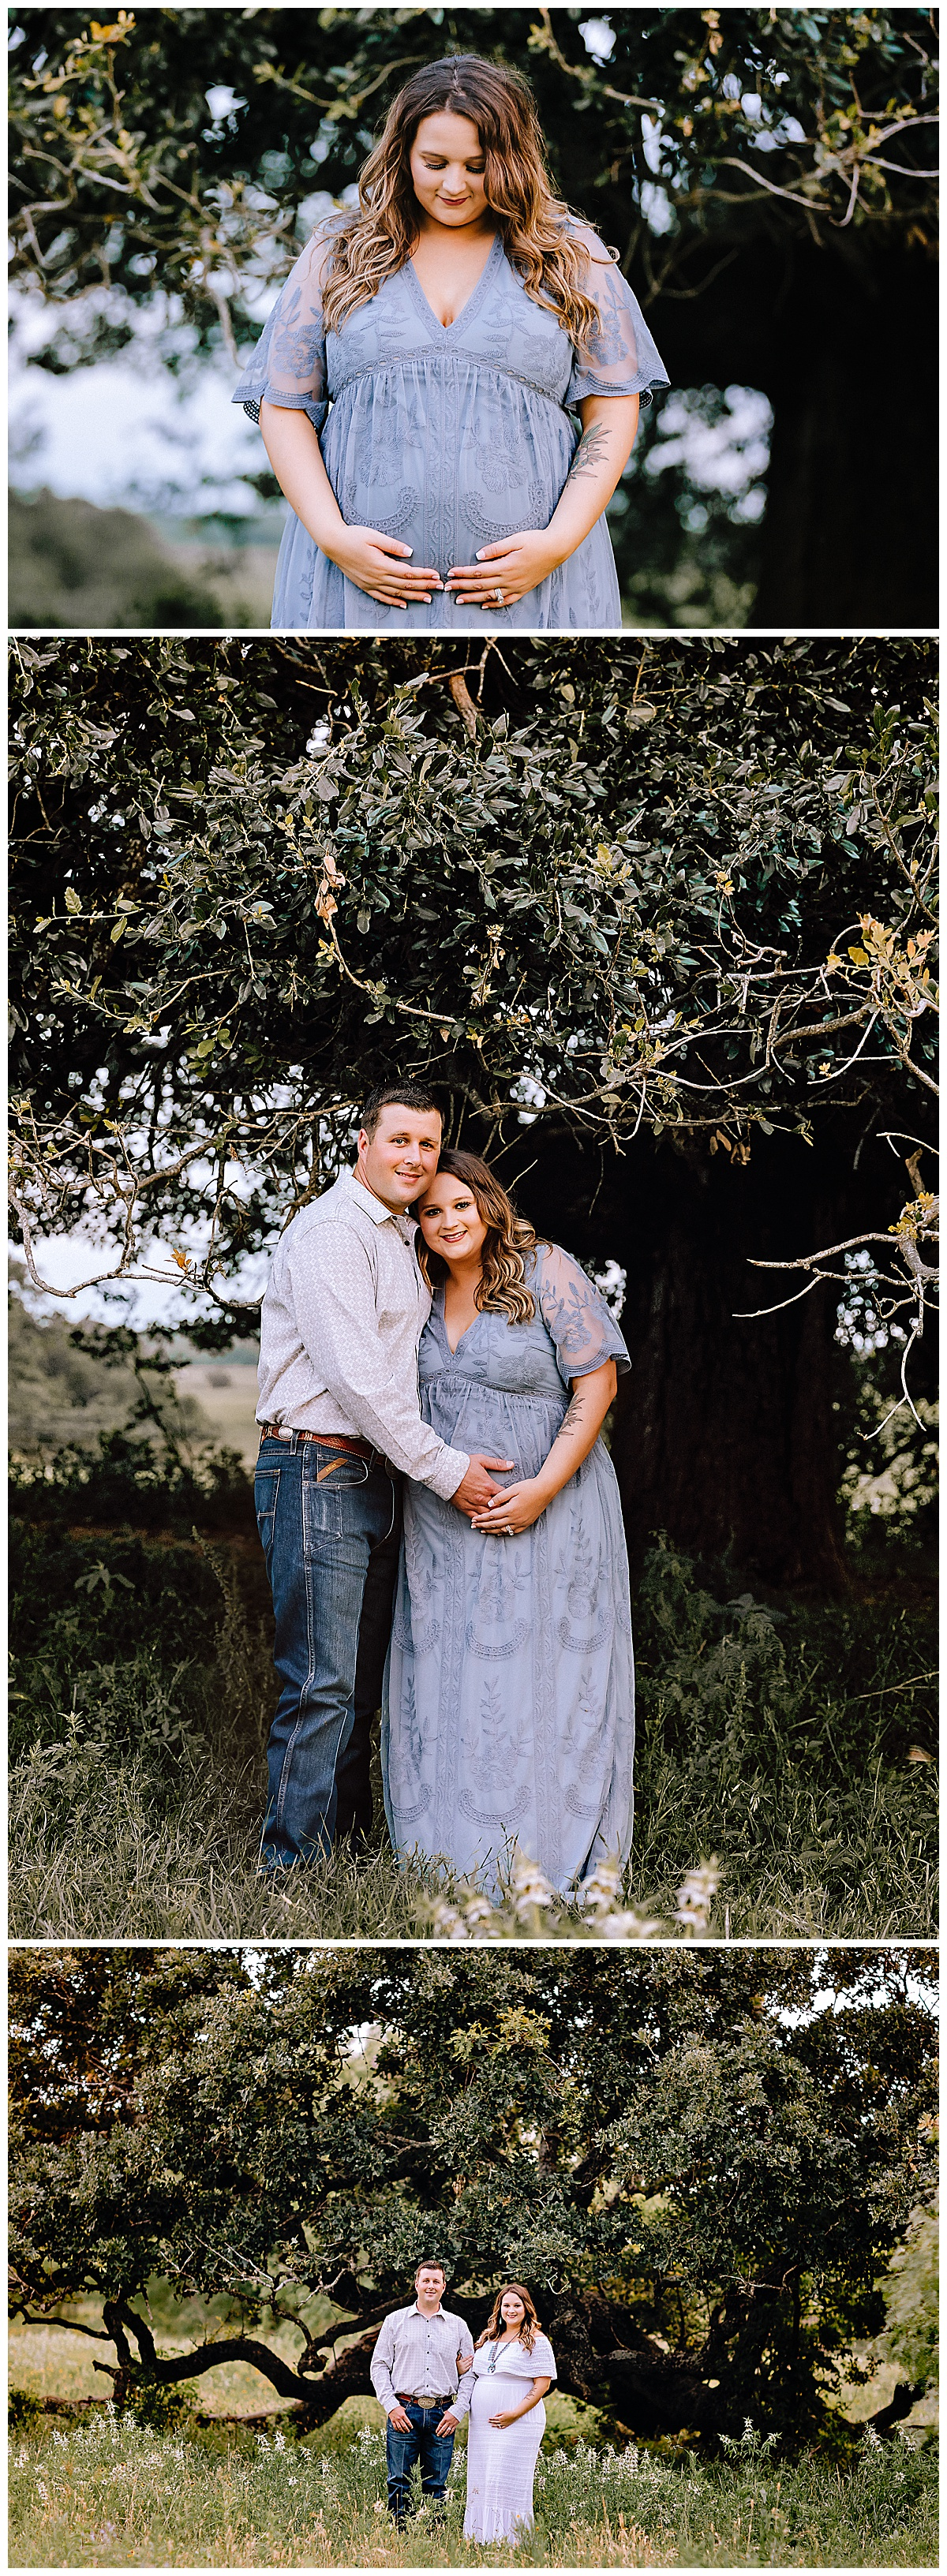 Rustic-Maternity-Session-Texas-Sunset-Carly-Barton-Photography_0073.jpg